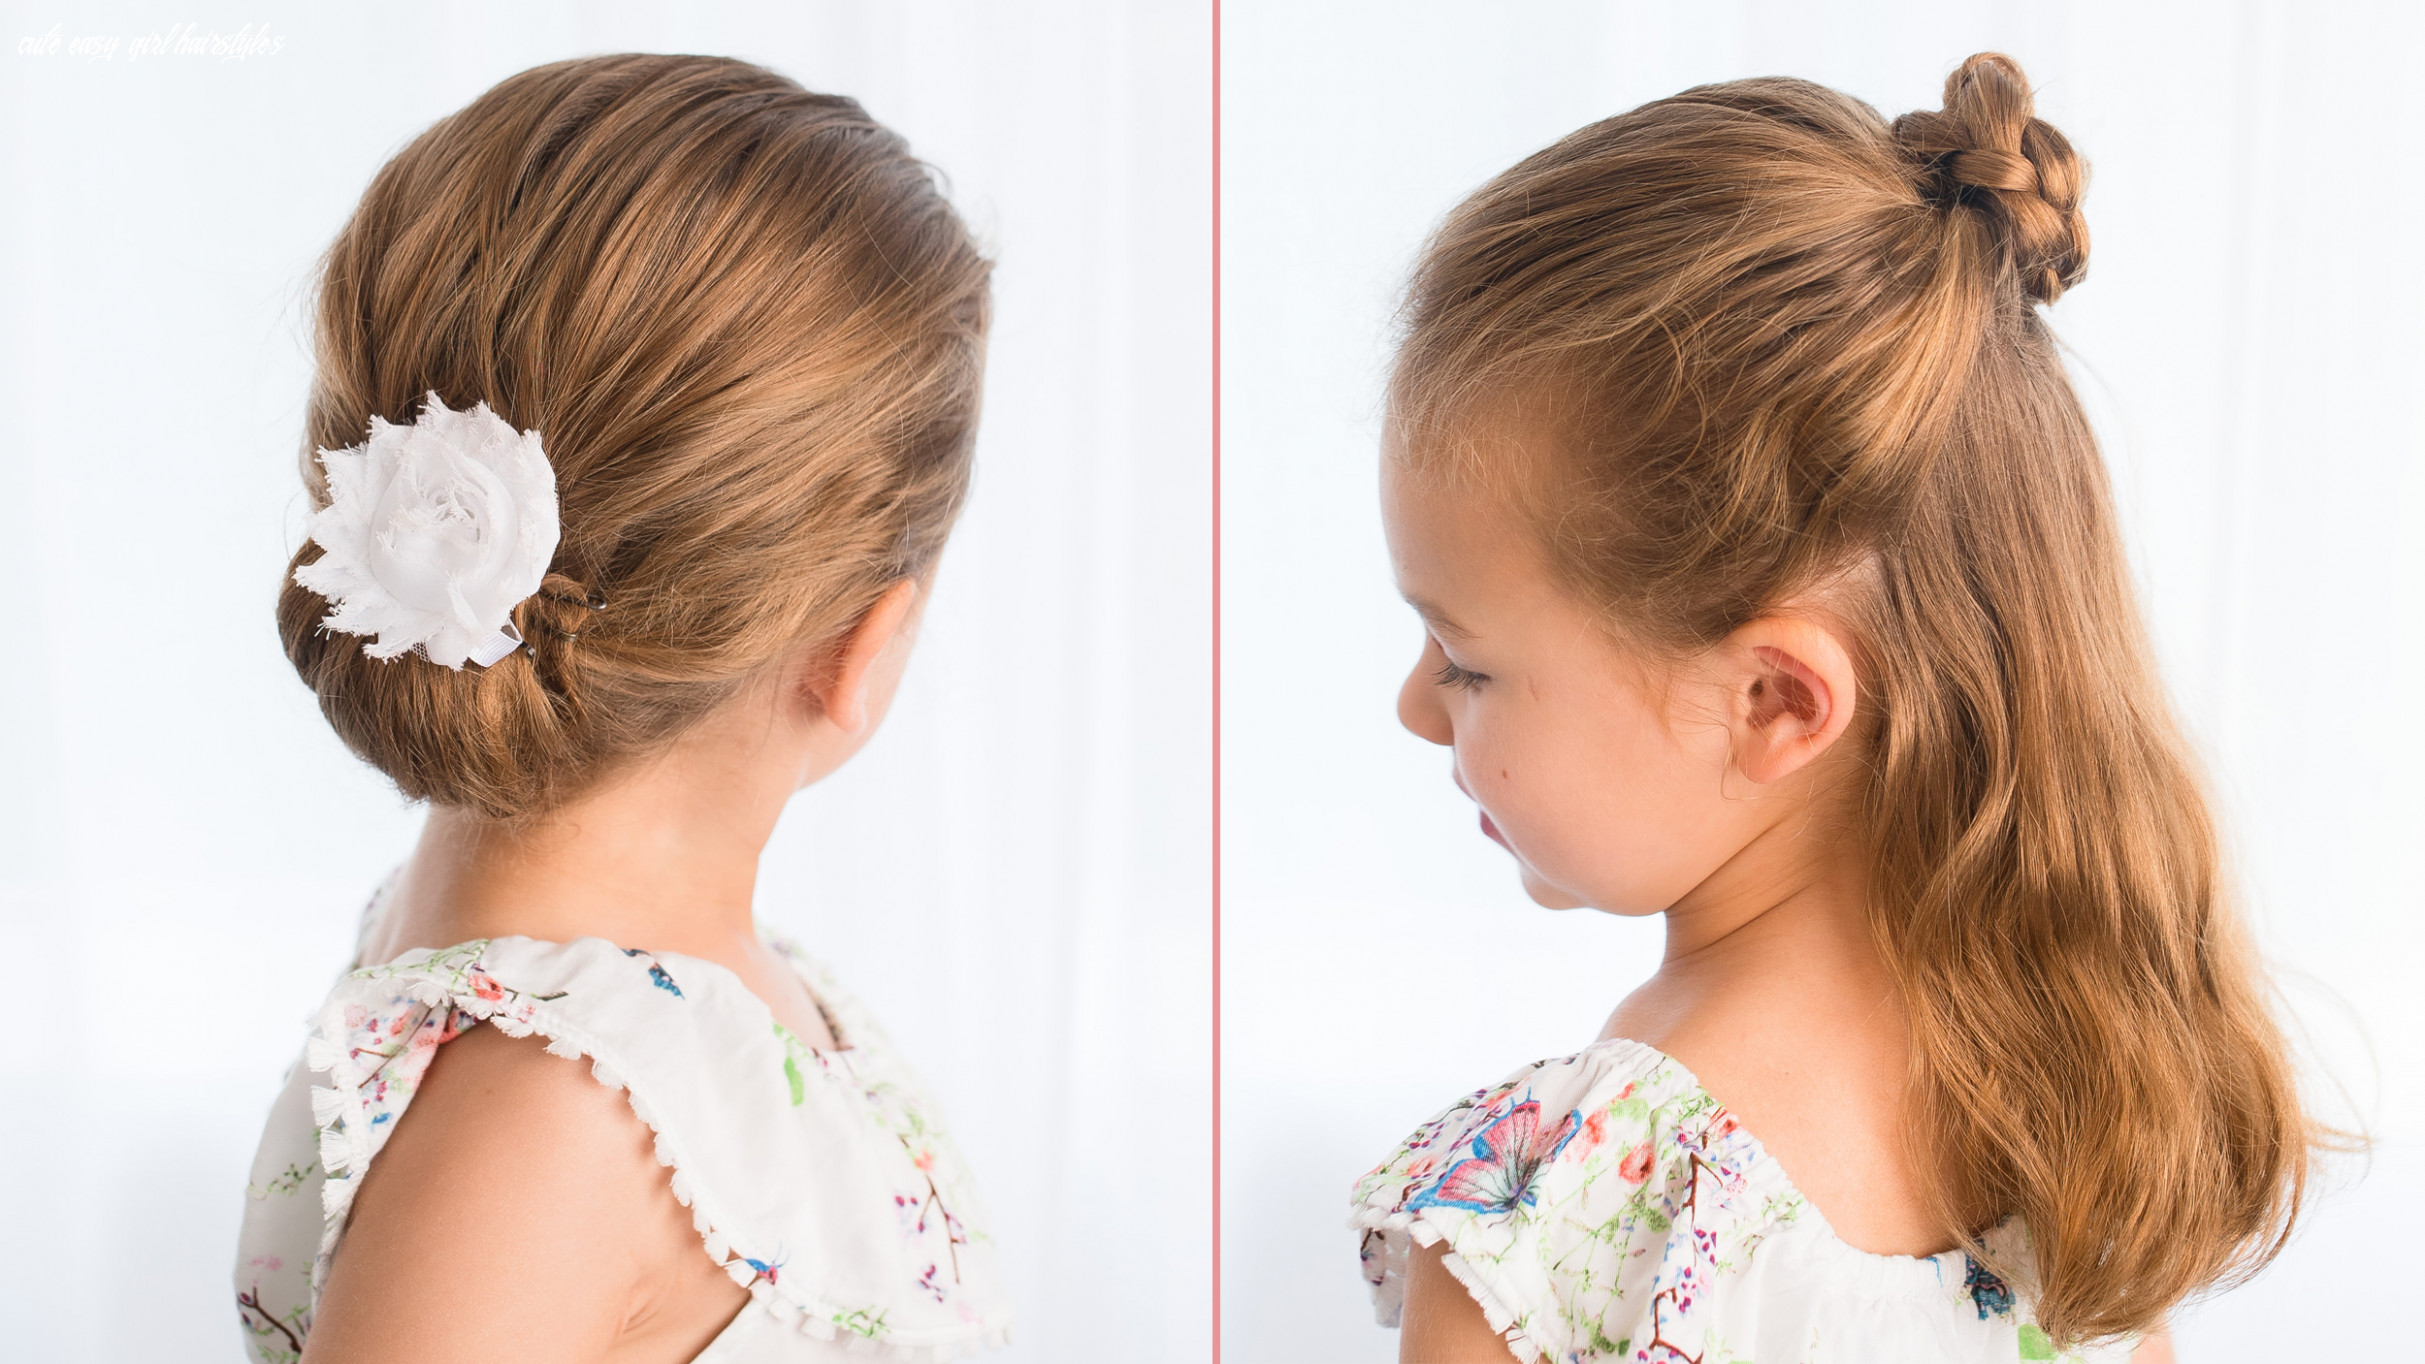 Easy hairstyles for girls that you can create in minutes